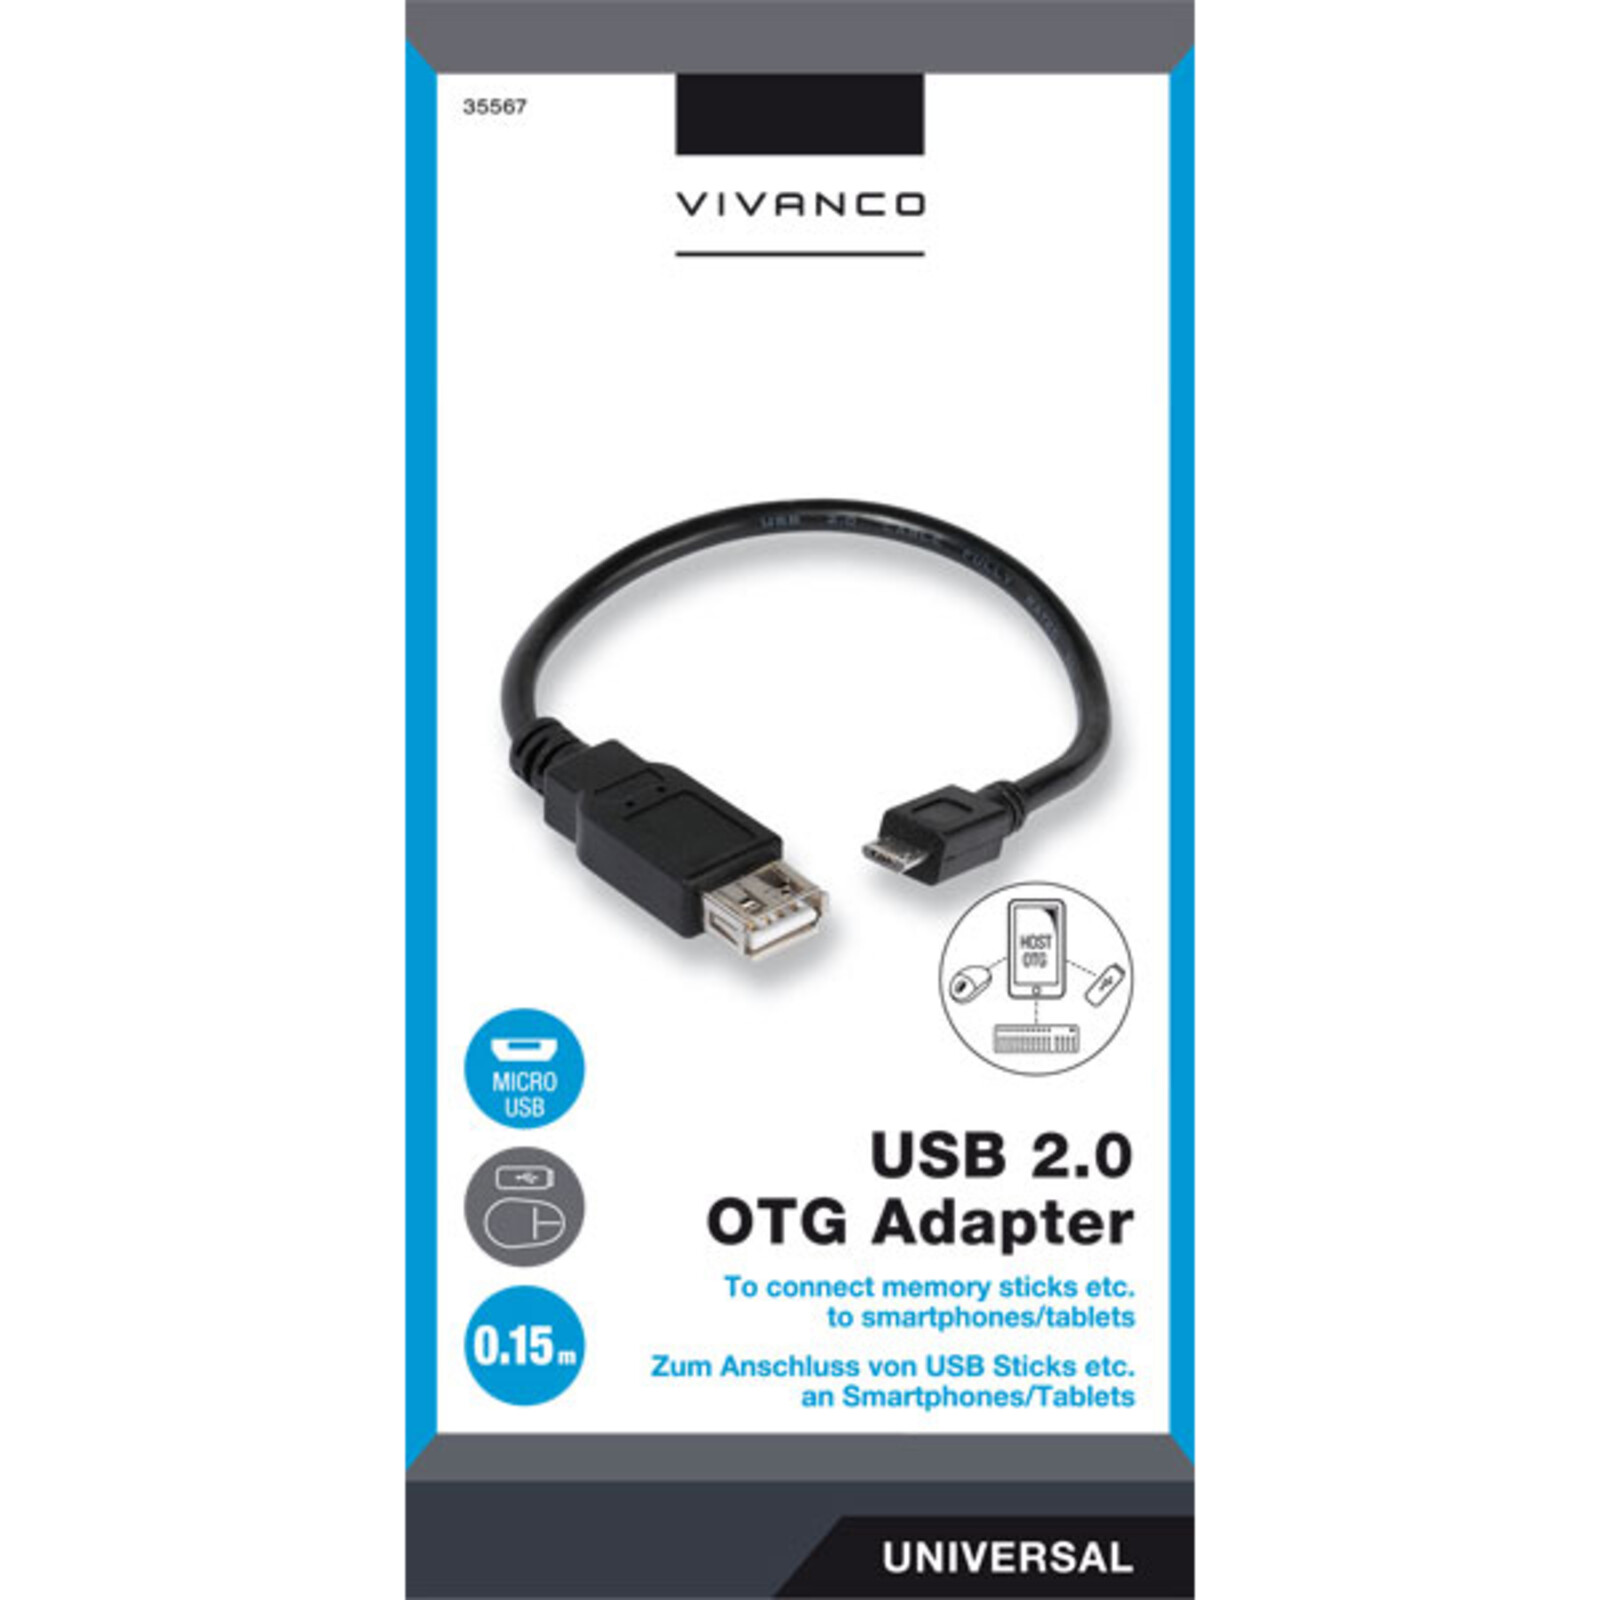 Otg Kabel Media Markt Details Zu Vivanco 35567 Otg Adapter